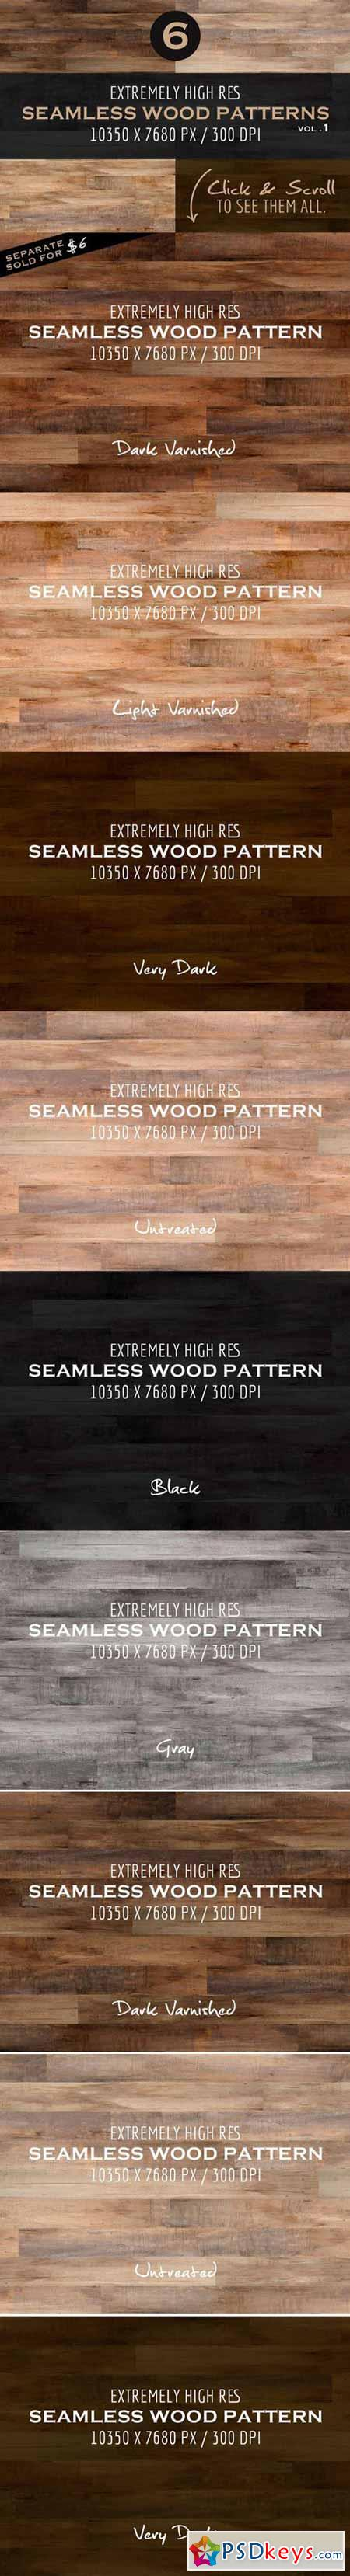 Extremely HR Seamless Wood Patterns 90793